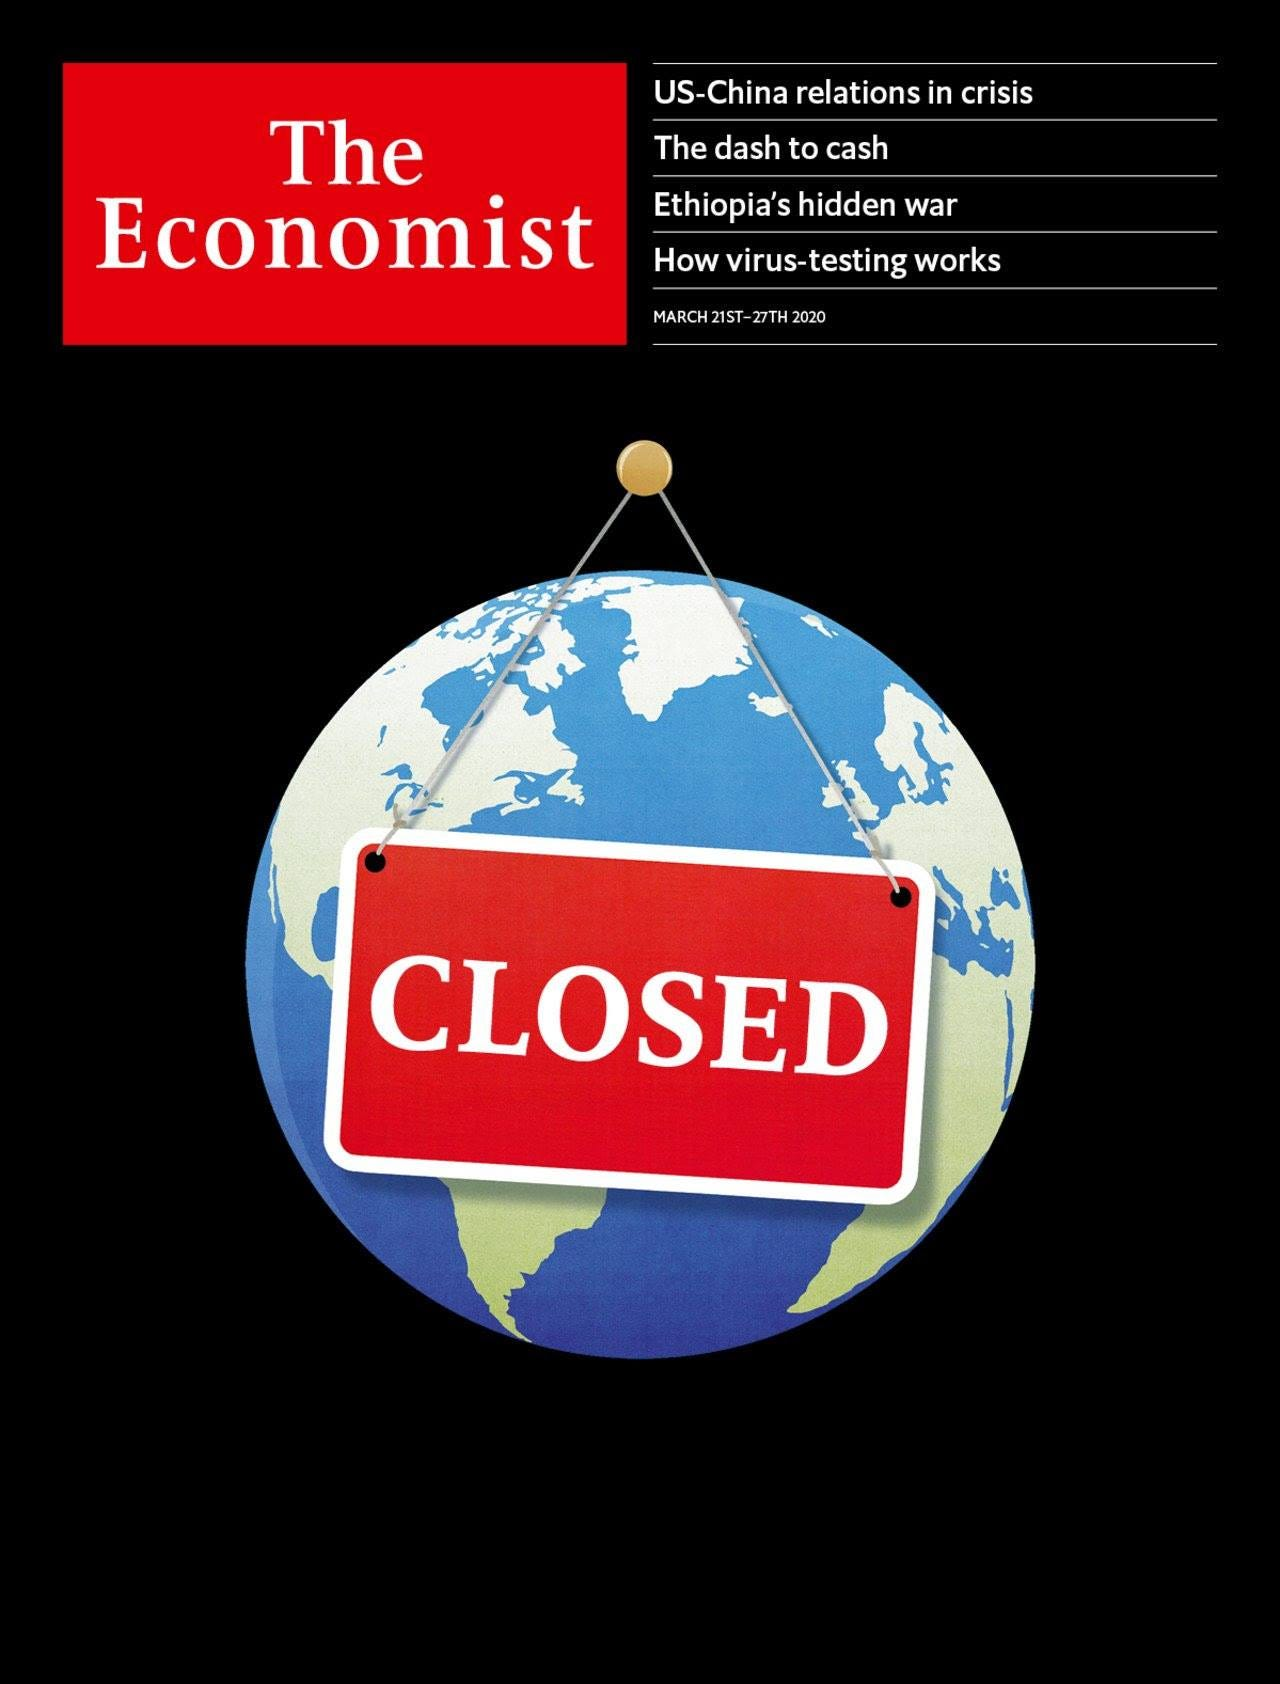 May be an image of text that says 'US- China relations The dash to cash crisis The Economist Ethiopia's hidden war How virus-testing works MARCH 27TH2020 CLOSED'